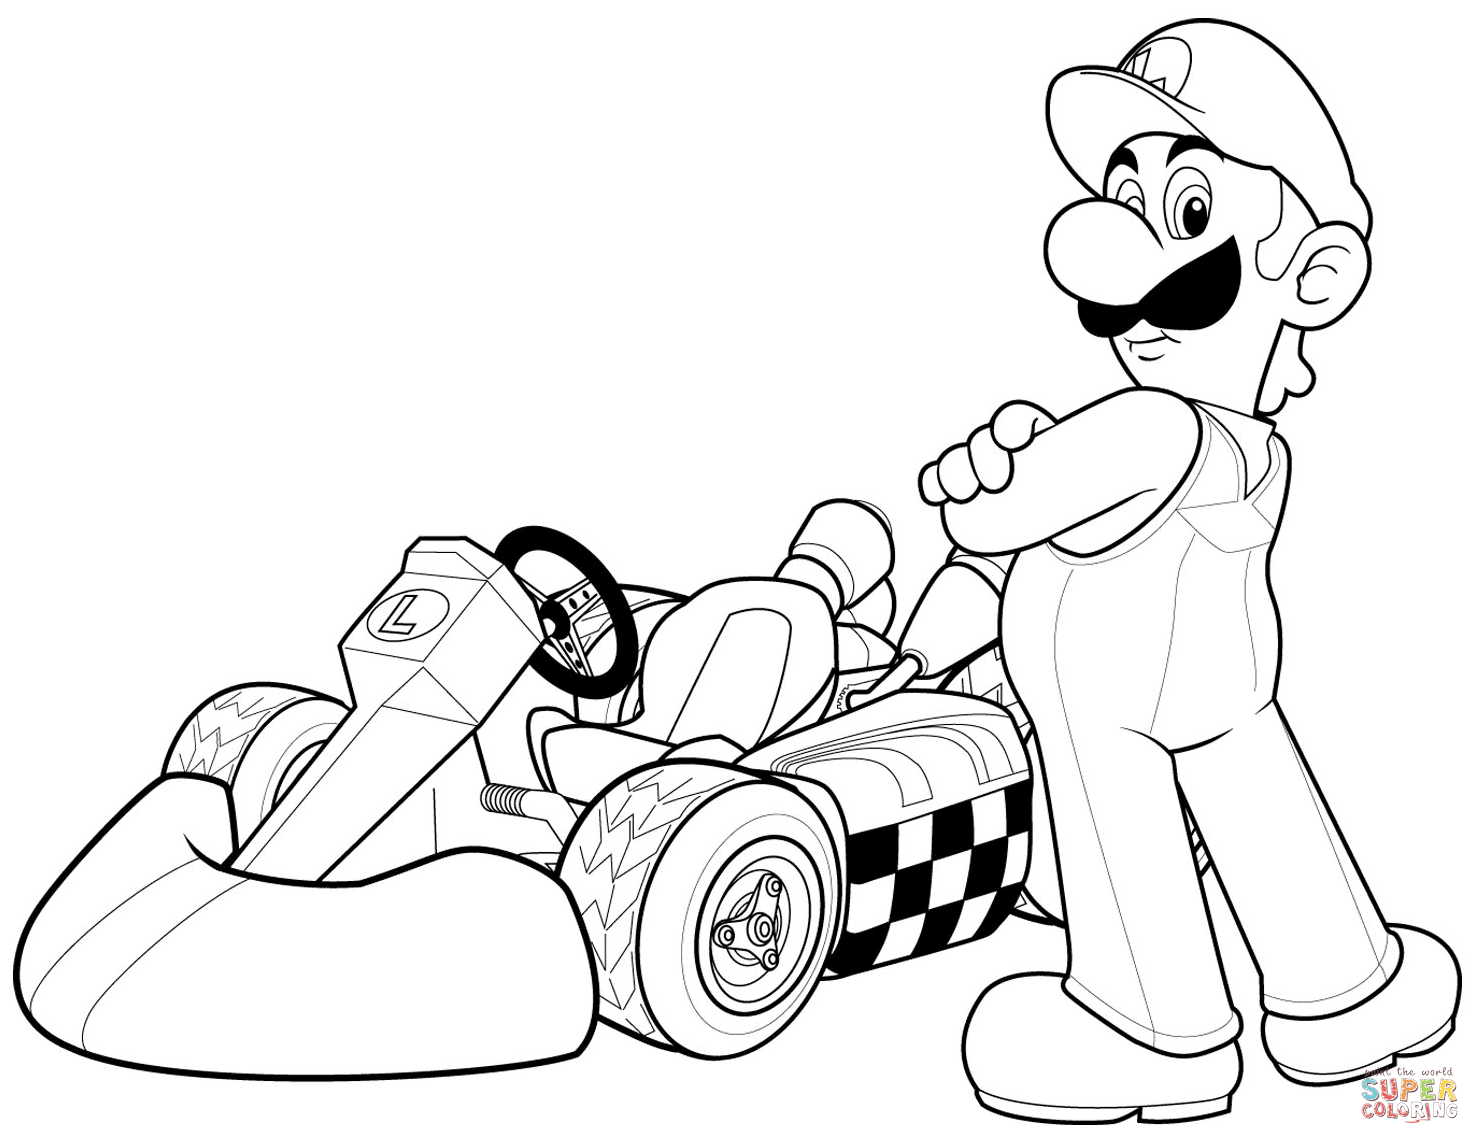 Mario In Mario Kart Wii Coloring Page Free Printable Coloring Pages